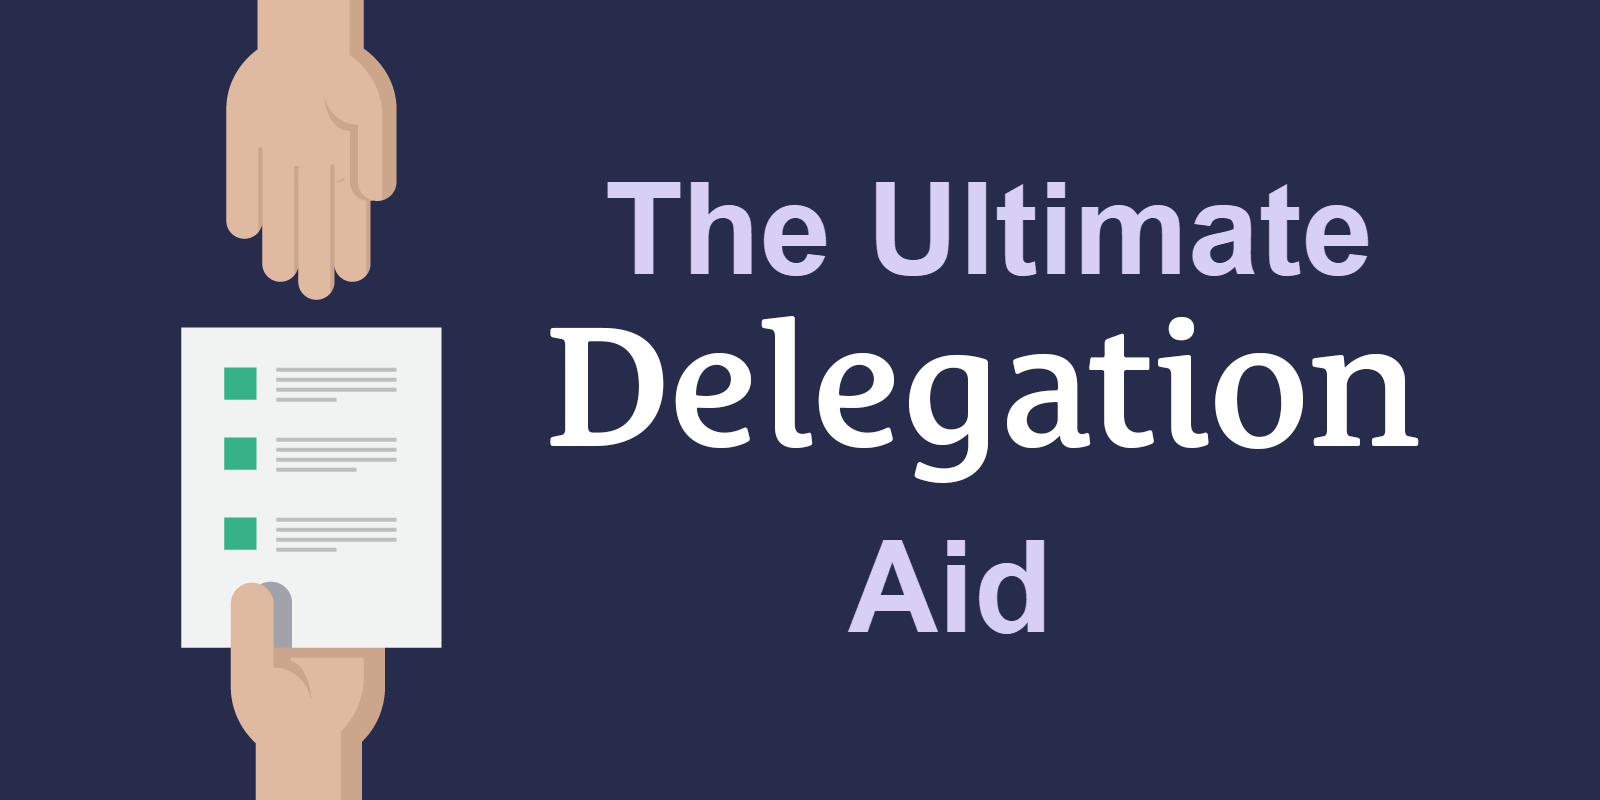 The Ultimate Delegation Aid | An Infographic